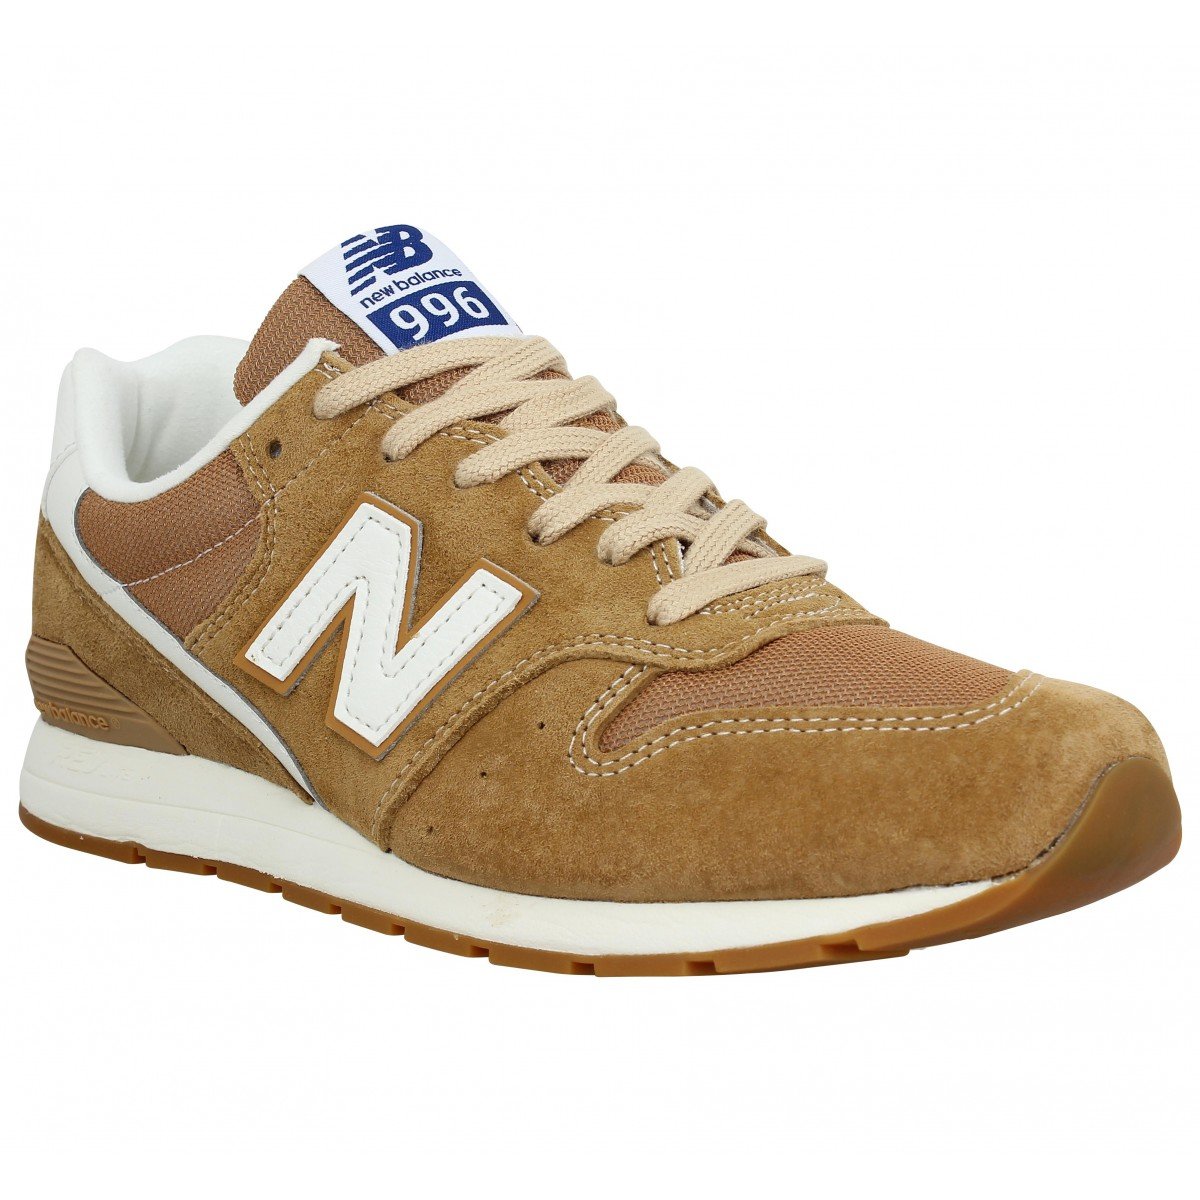 New Balance Homme Mrl 996 -42,5-brown